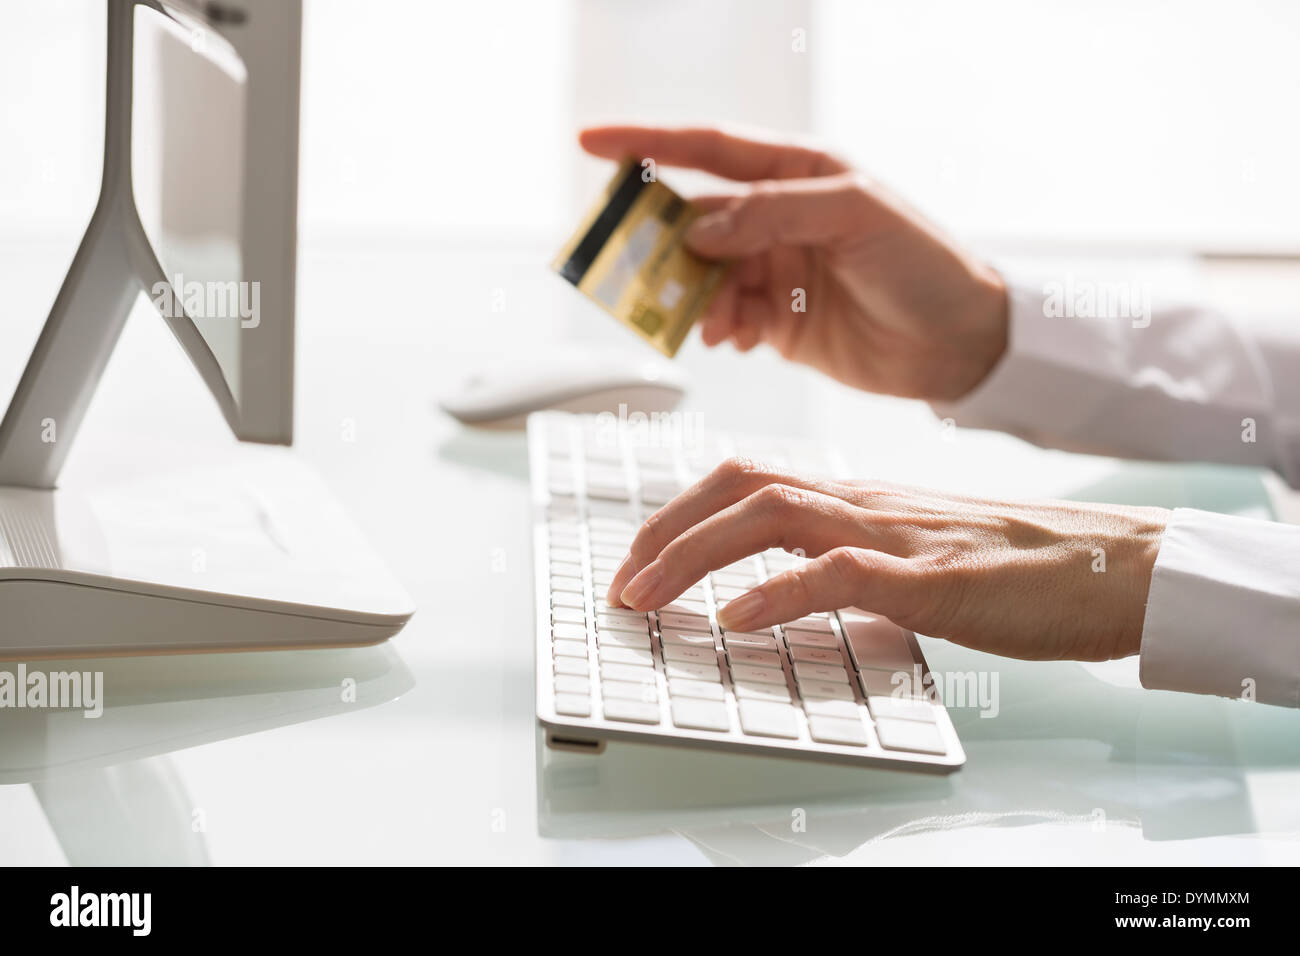 Woman shopping sur internet à l'aide d'ordinateur et une carte de crédit Photo Stock